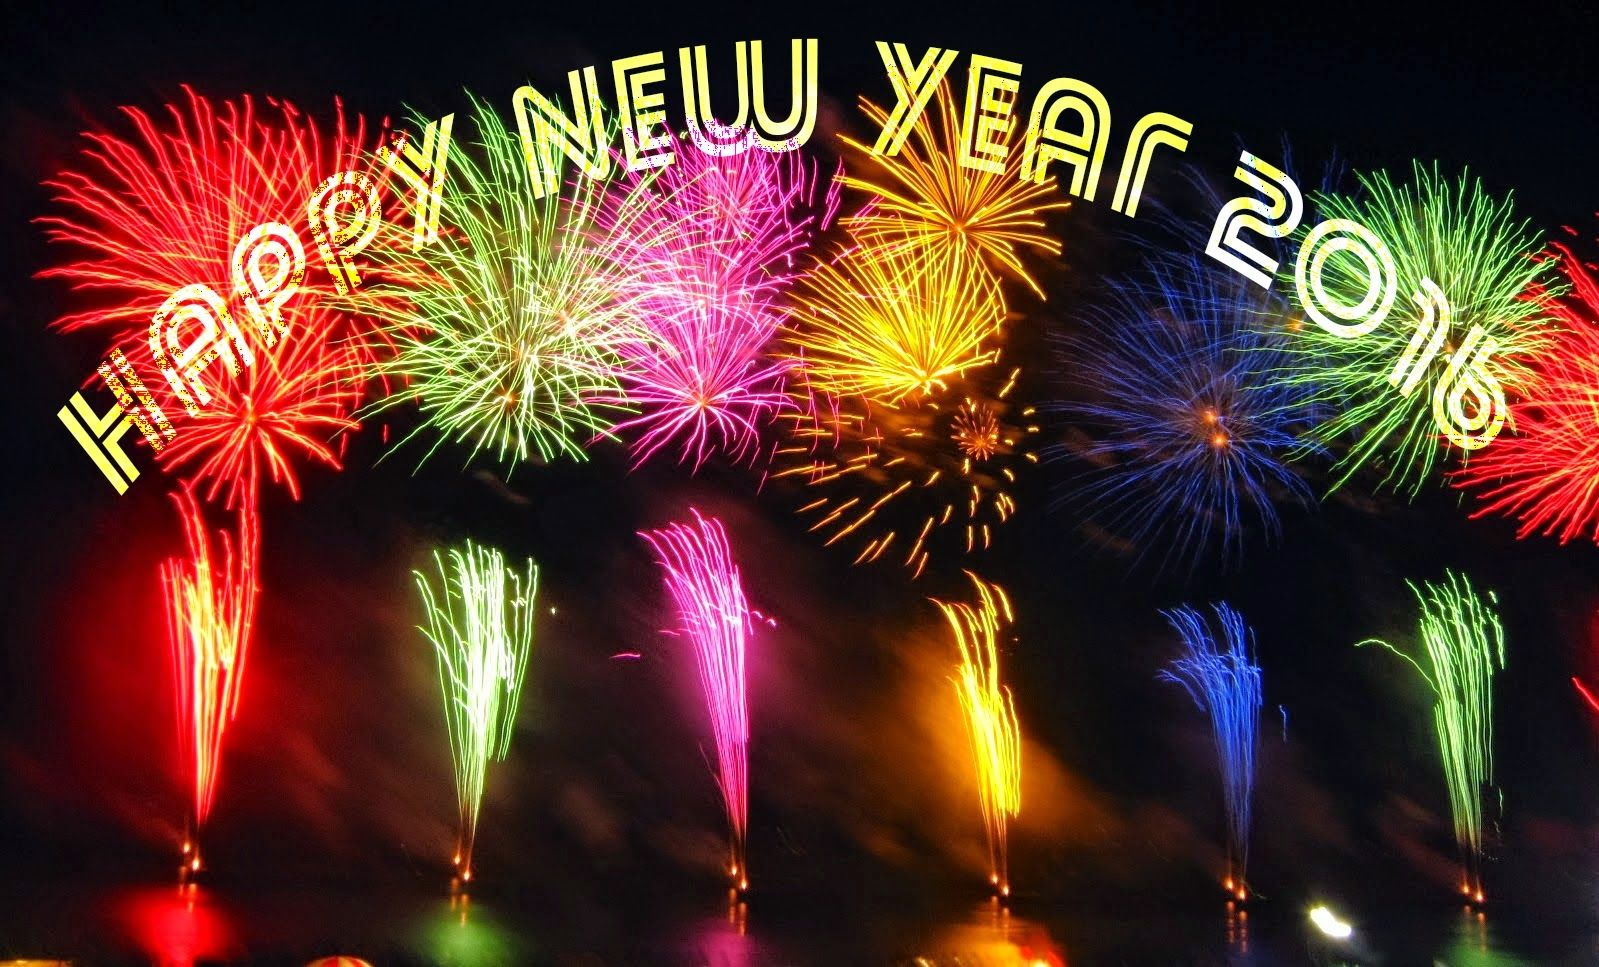 17 Best Images About New Year On Pinterest U Welcome New Year